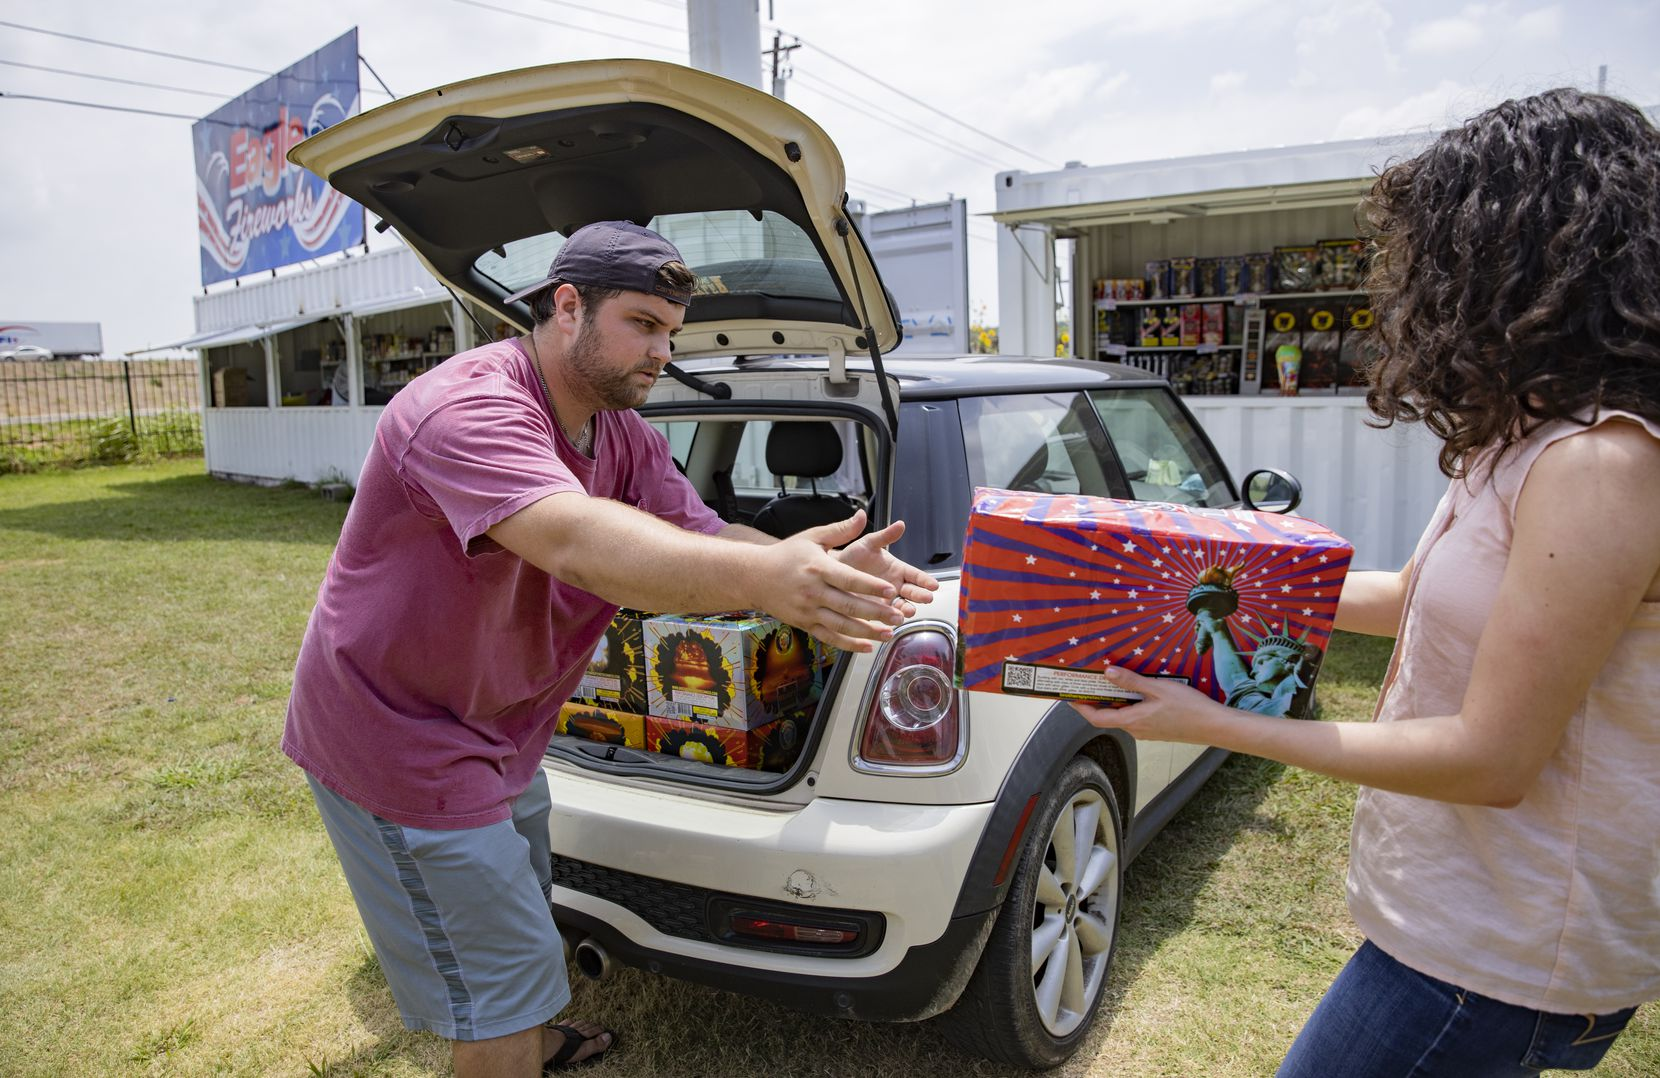 Brock Rodgers of Eagle Fireworks in Midlothian helped Madeline Small load a purchase into her car on Thursday.